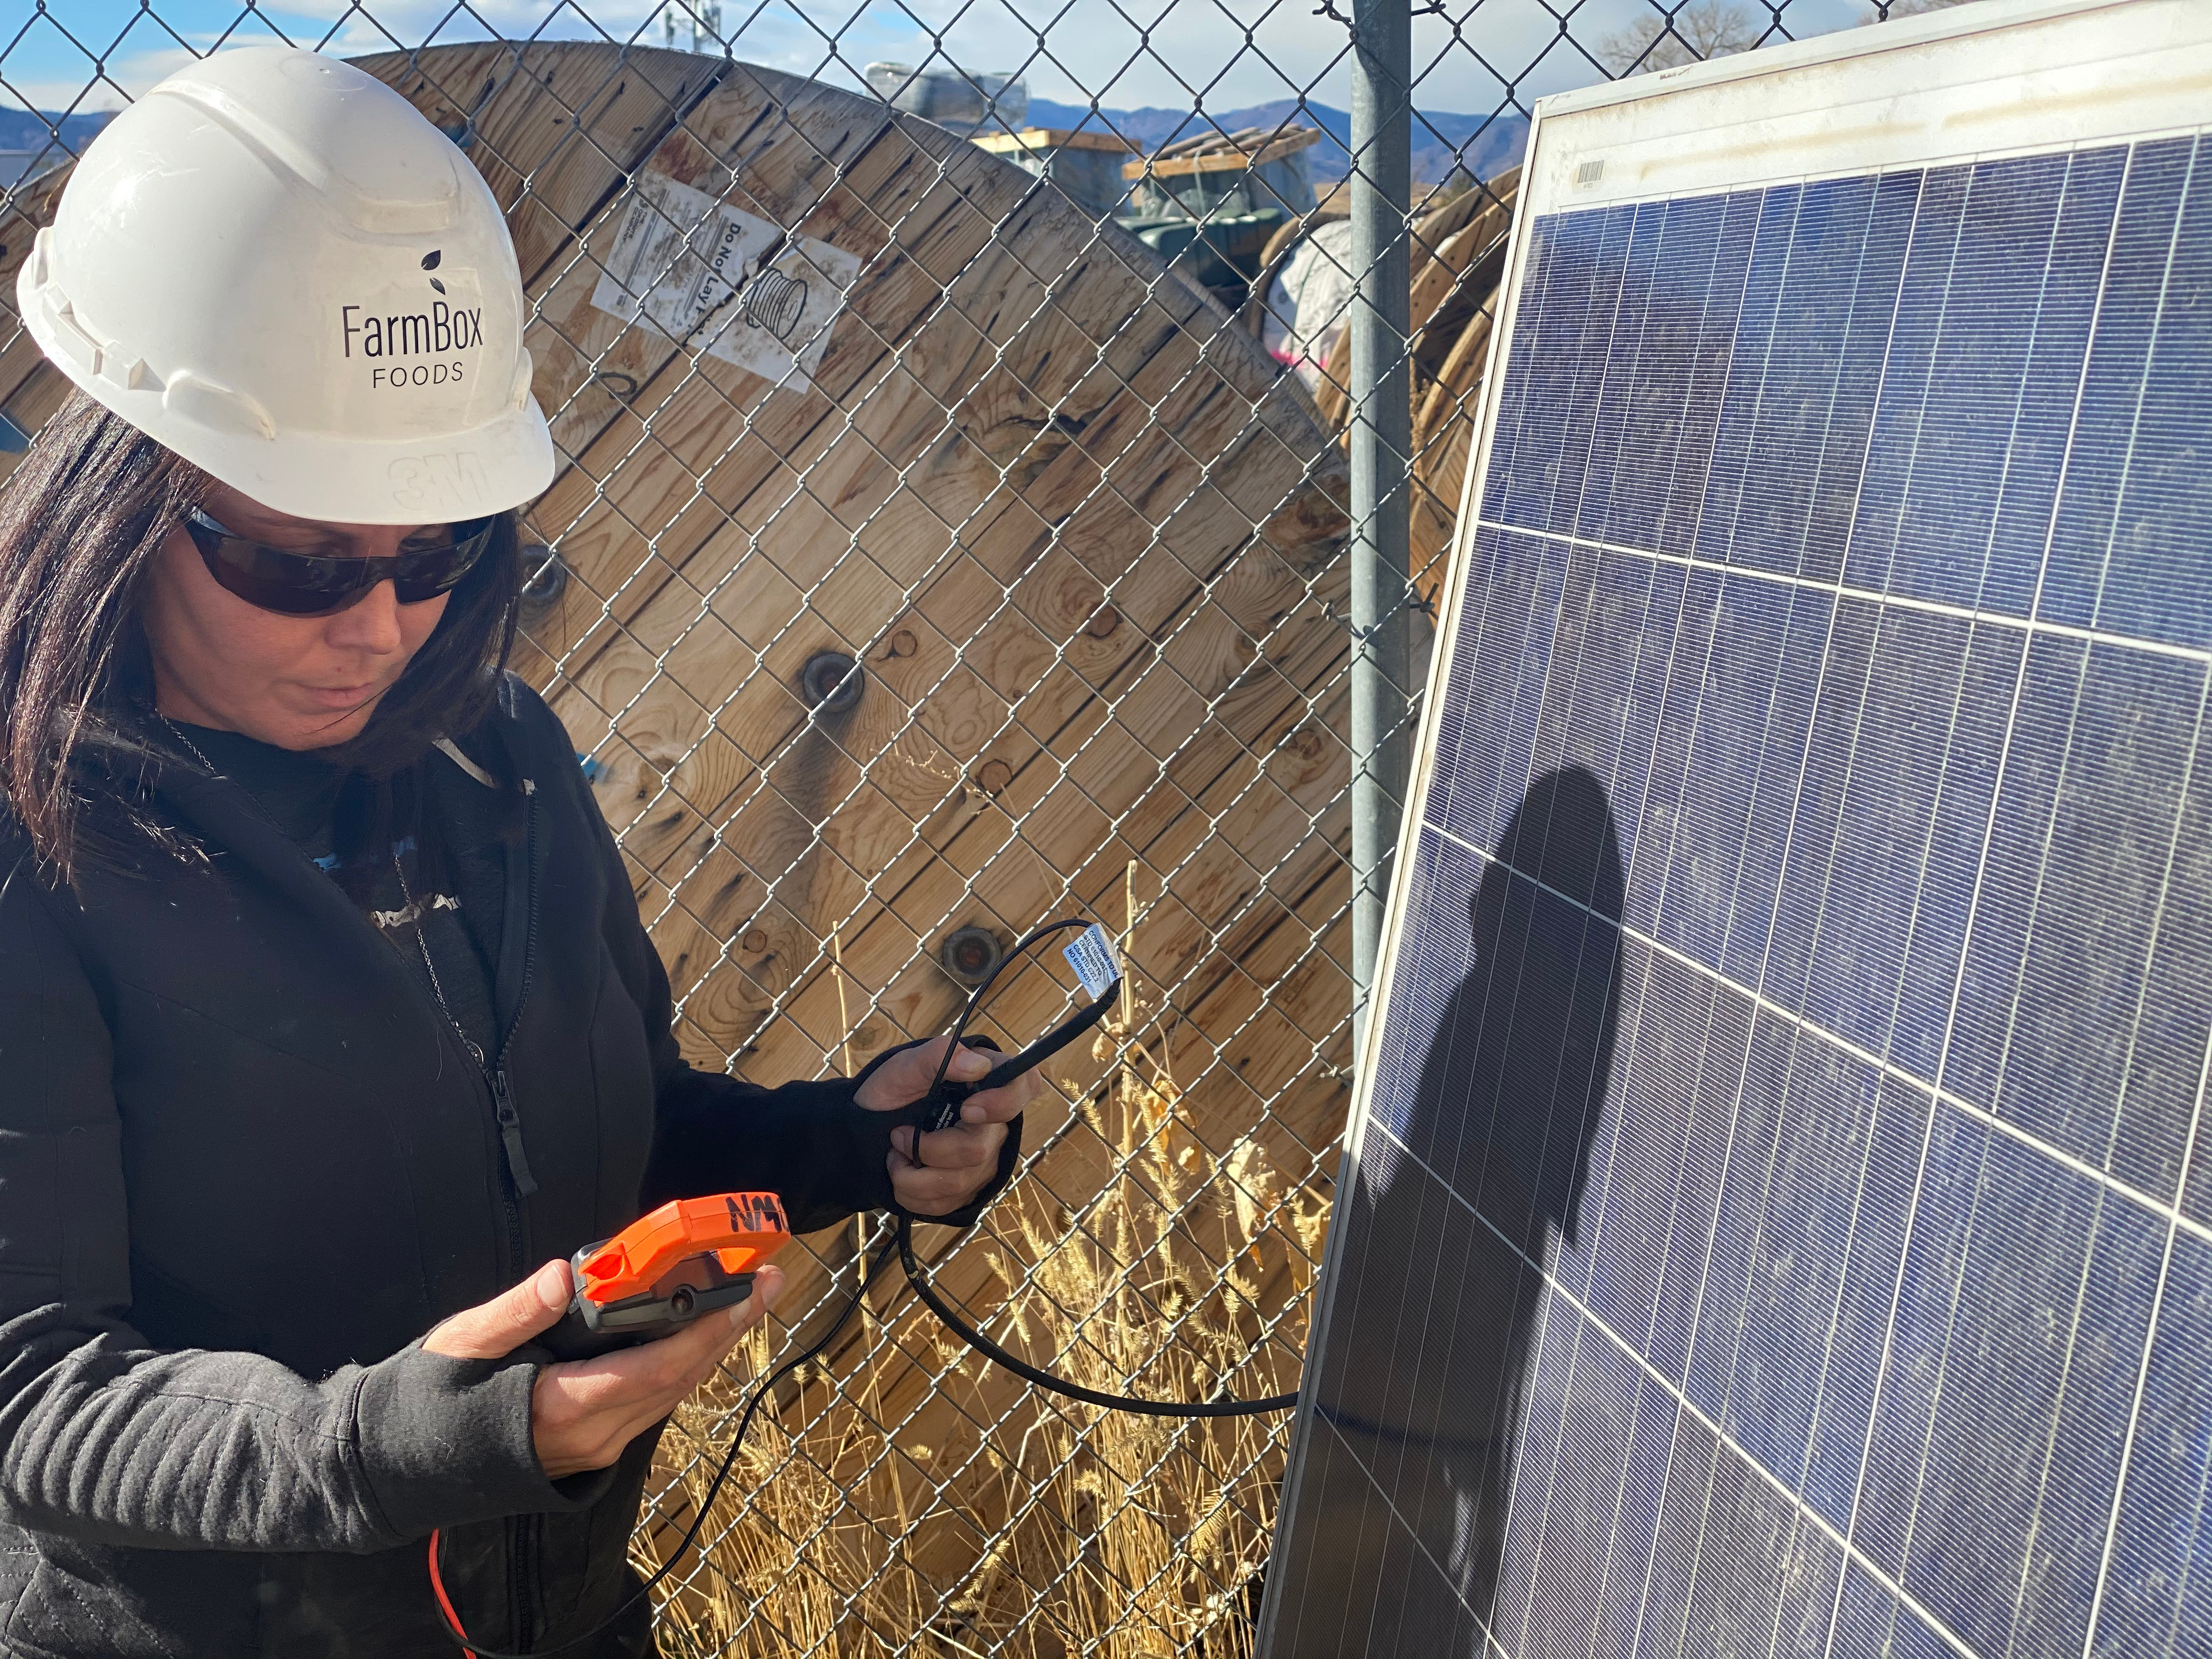 Adrienne Cloud tests the solar panel voltage output with a multimeter.